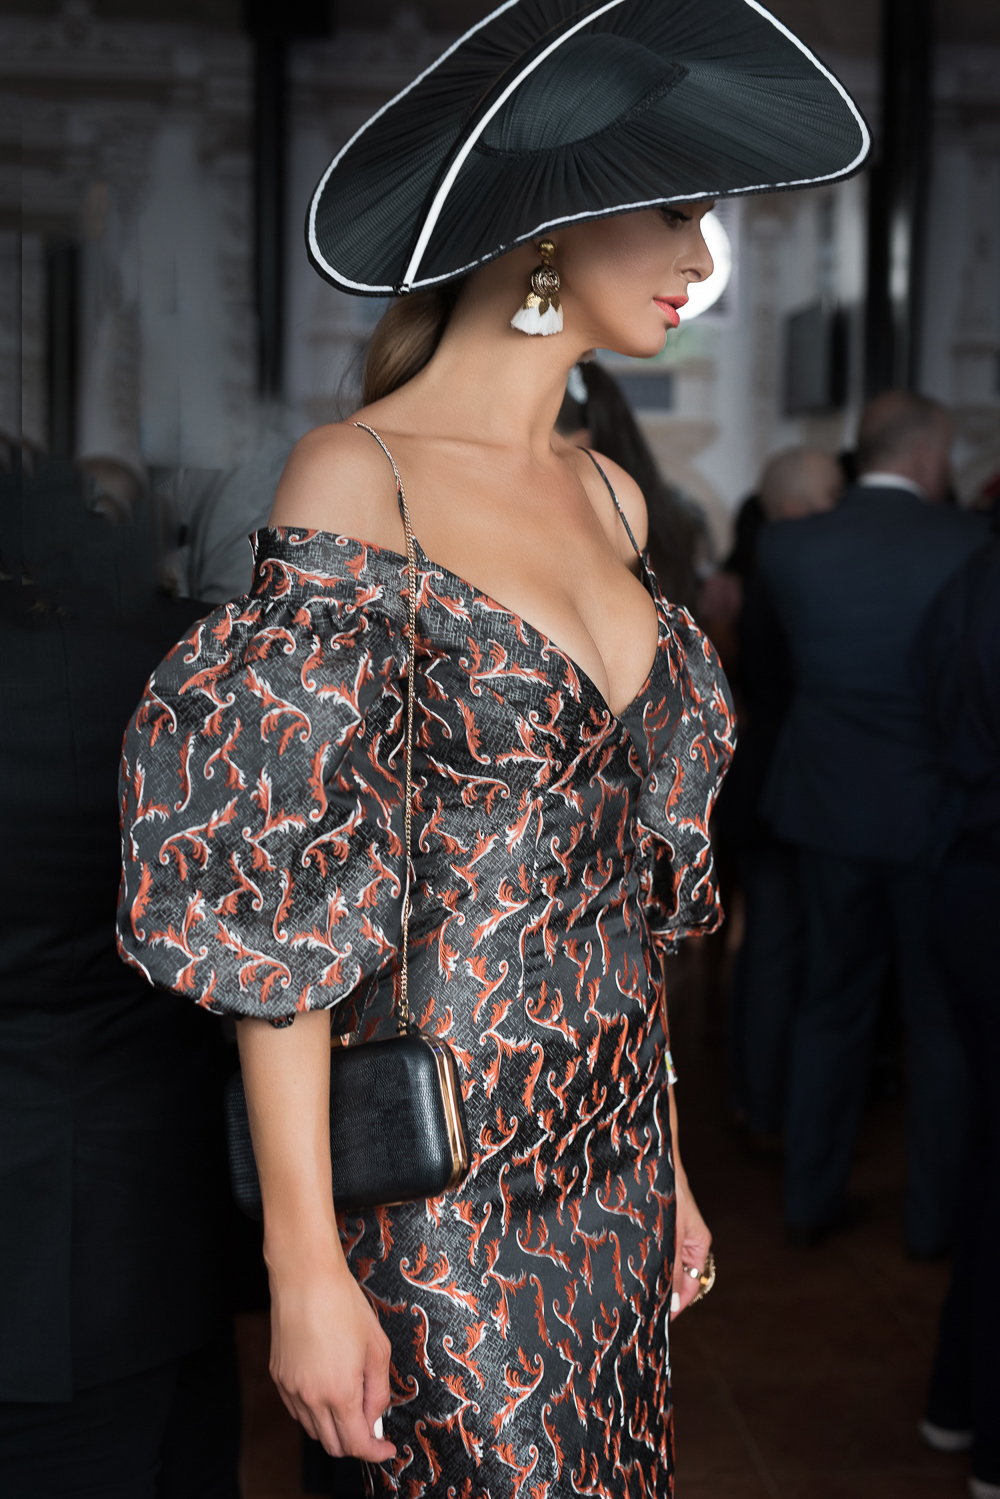 melbourne-cup-day-lavazza-whatwouldkarldo_0034